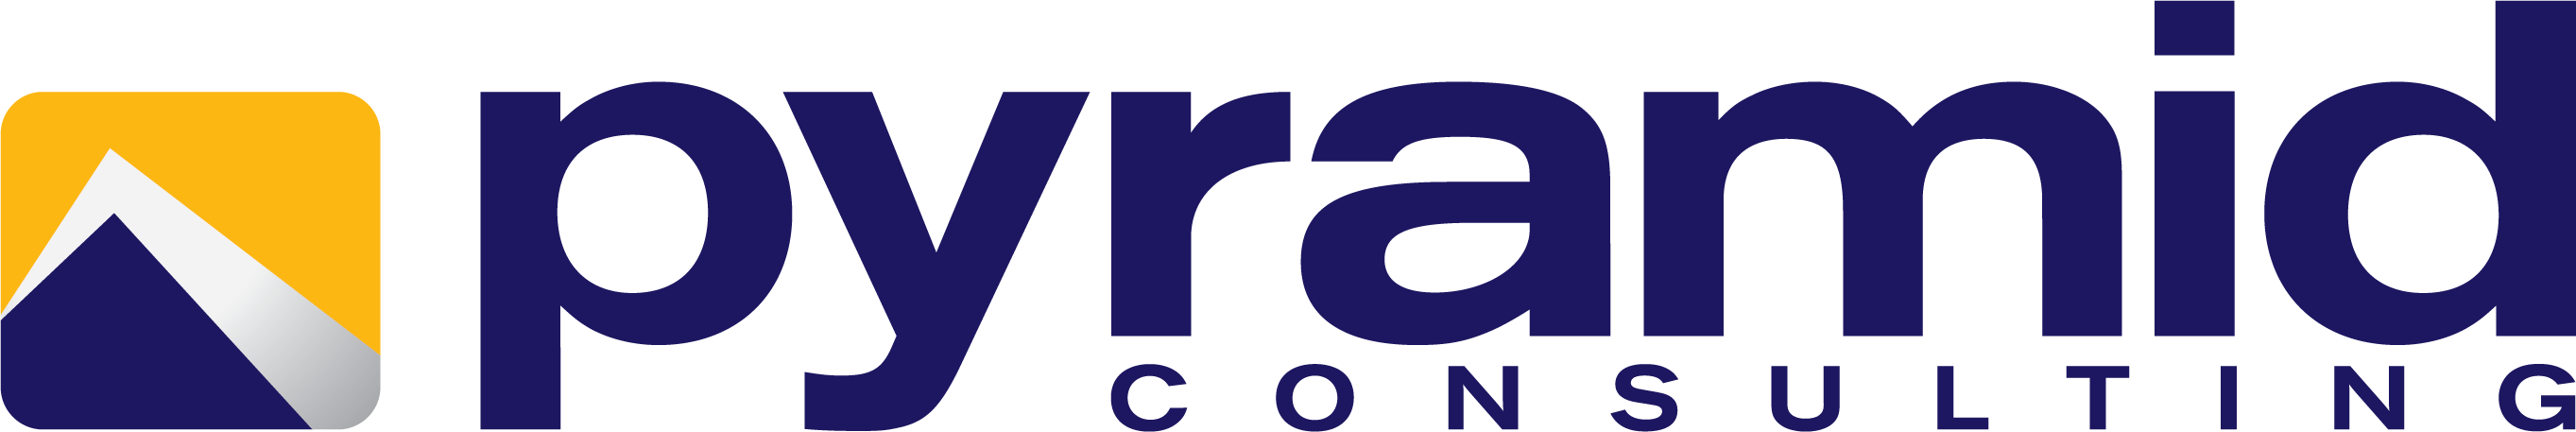 Pyramid Consulting, Inc